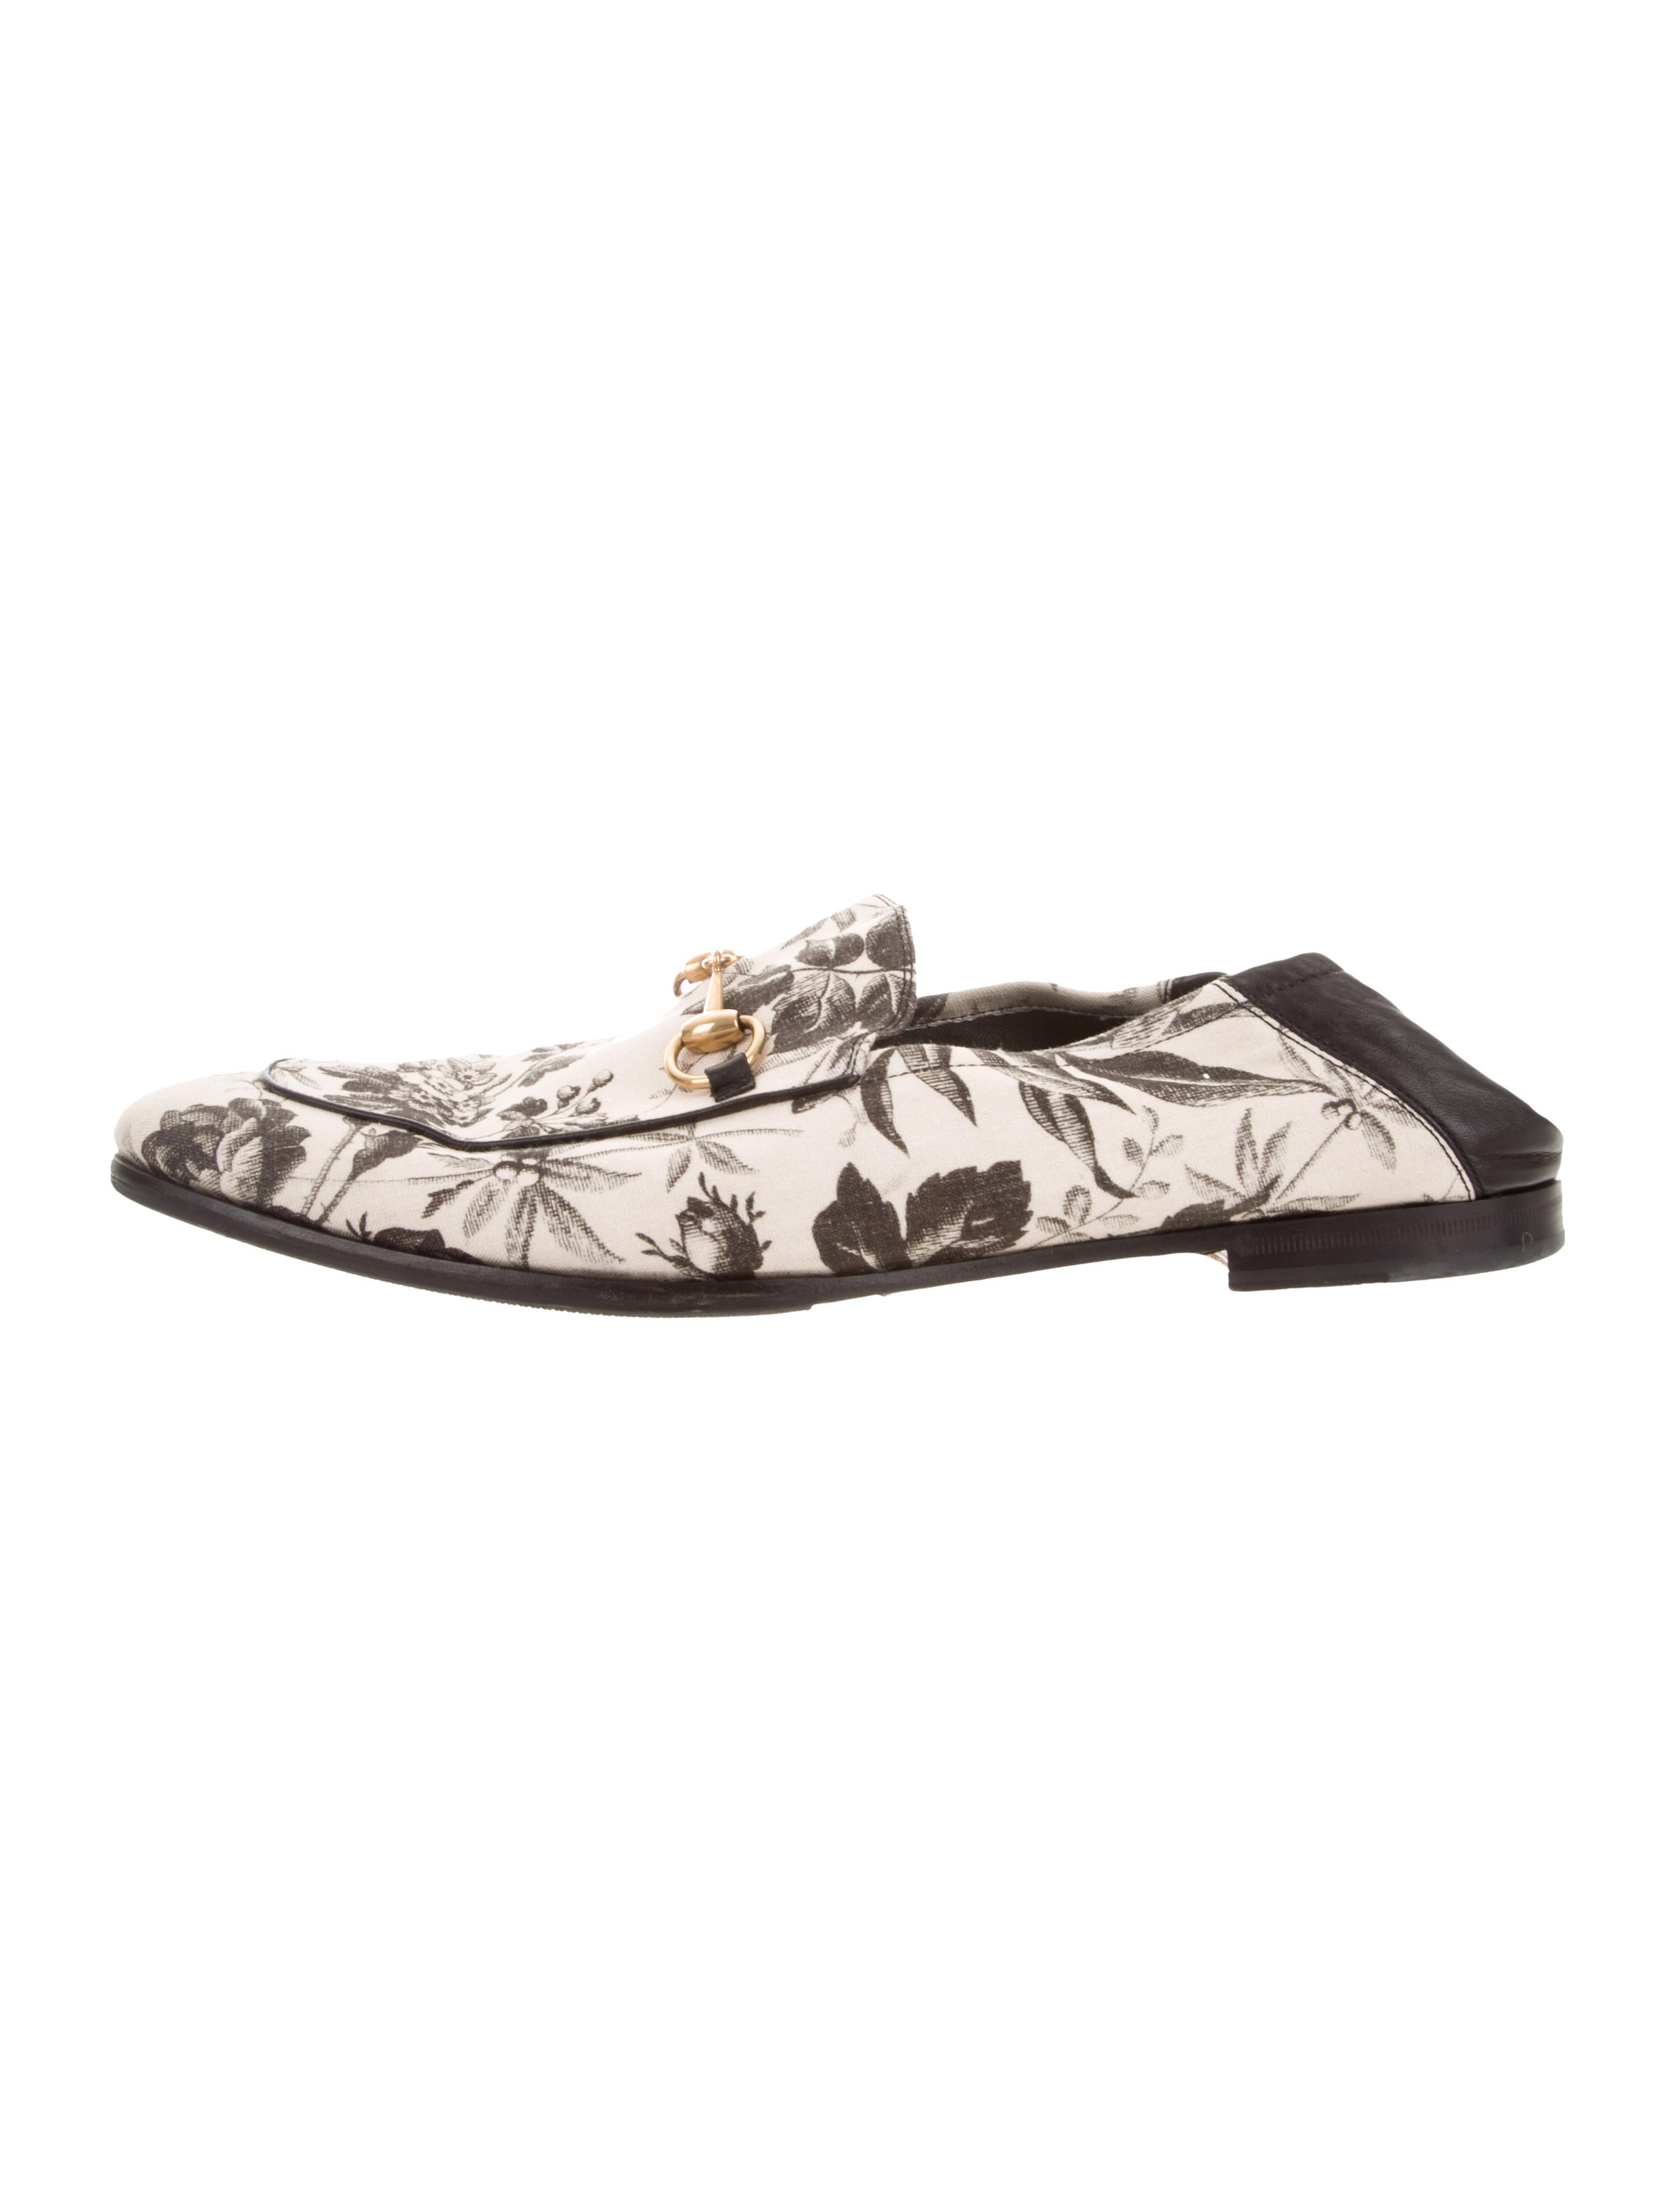 b64c0daeeb8 Gucci Brixton Floral Horsebit Loafers - Shoes - GUC256525